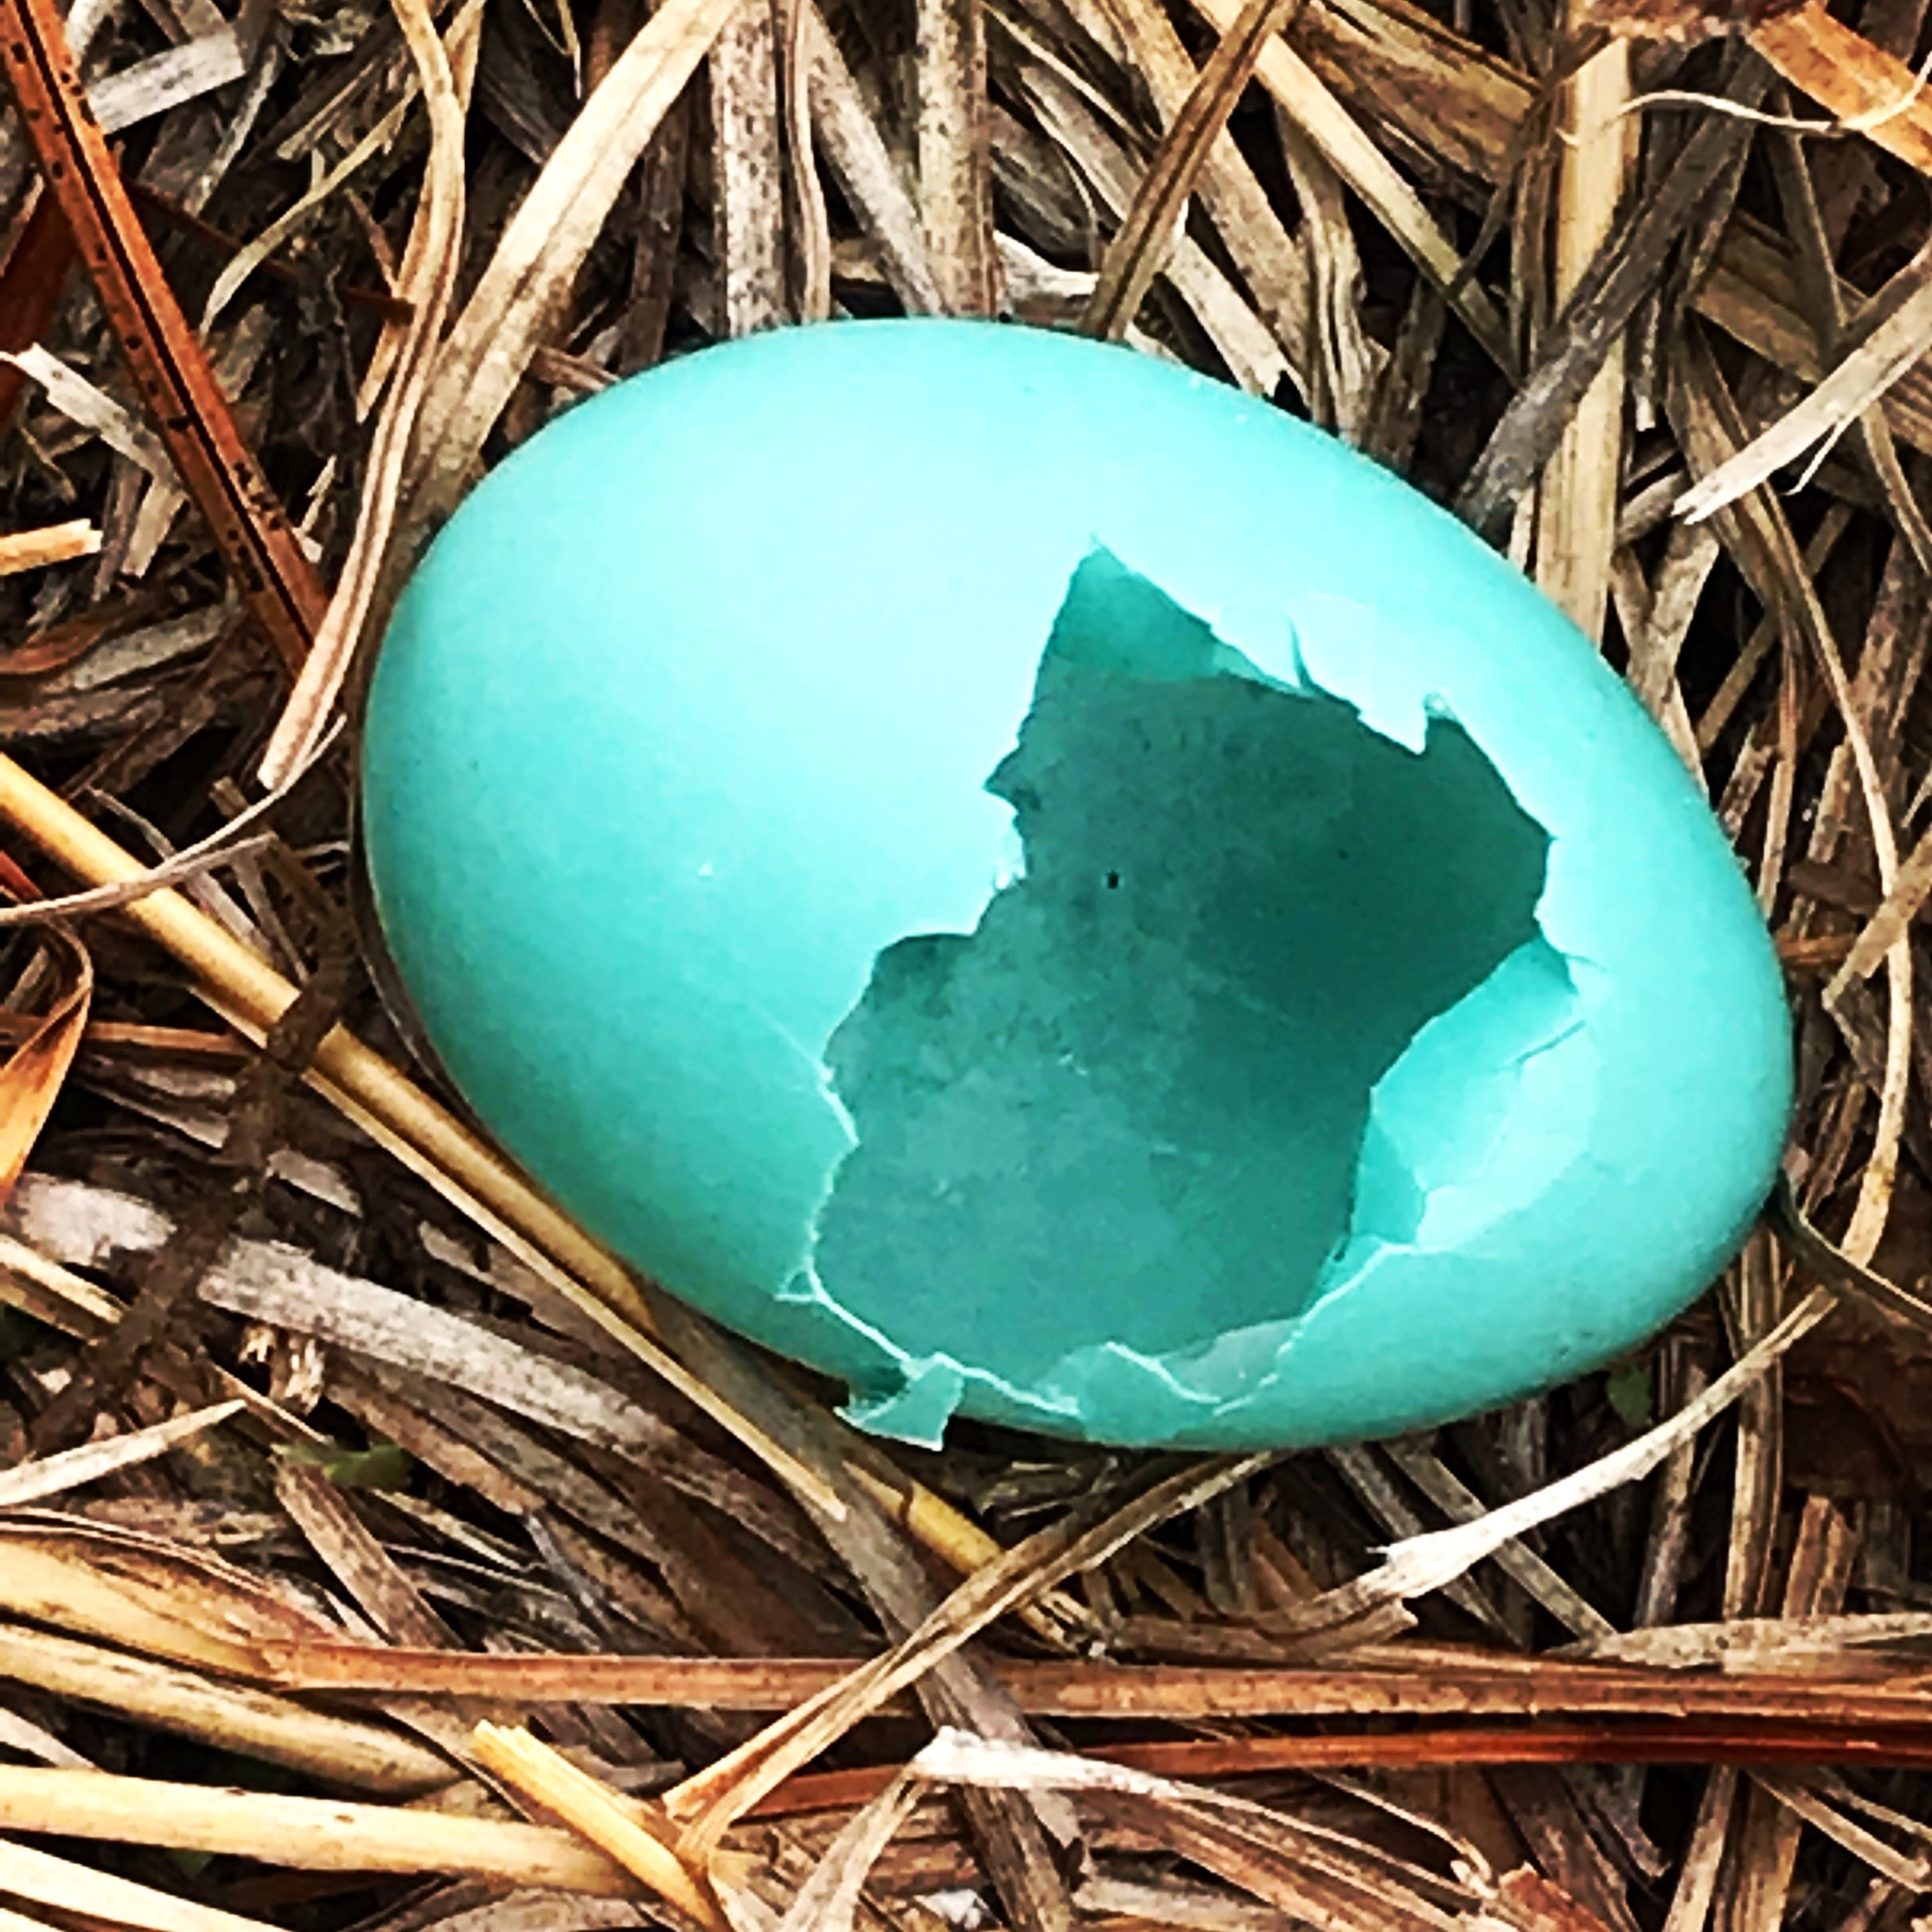 Broken egg found in the meadow